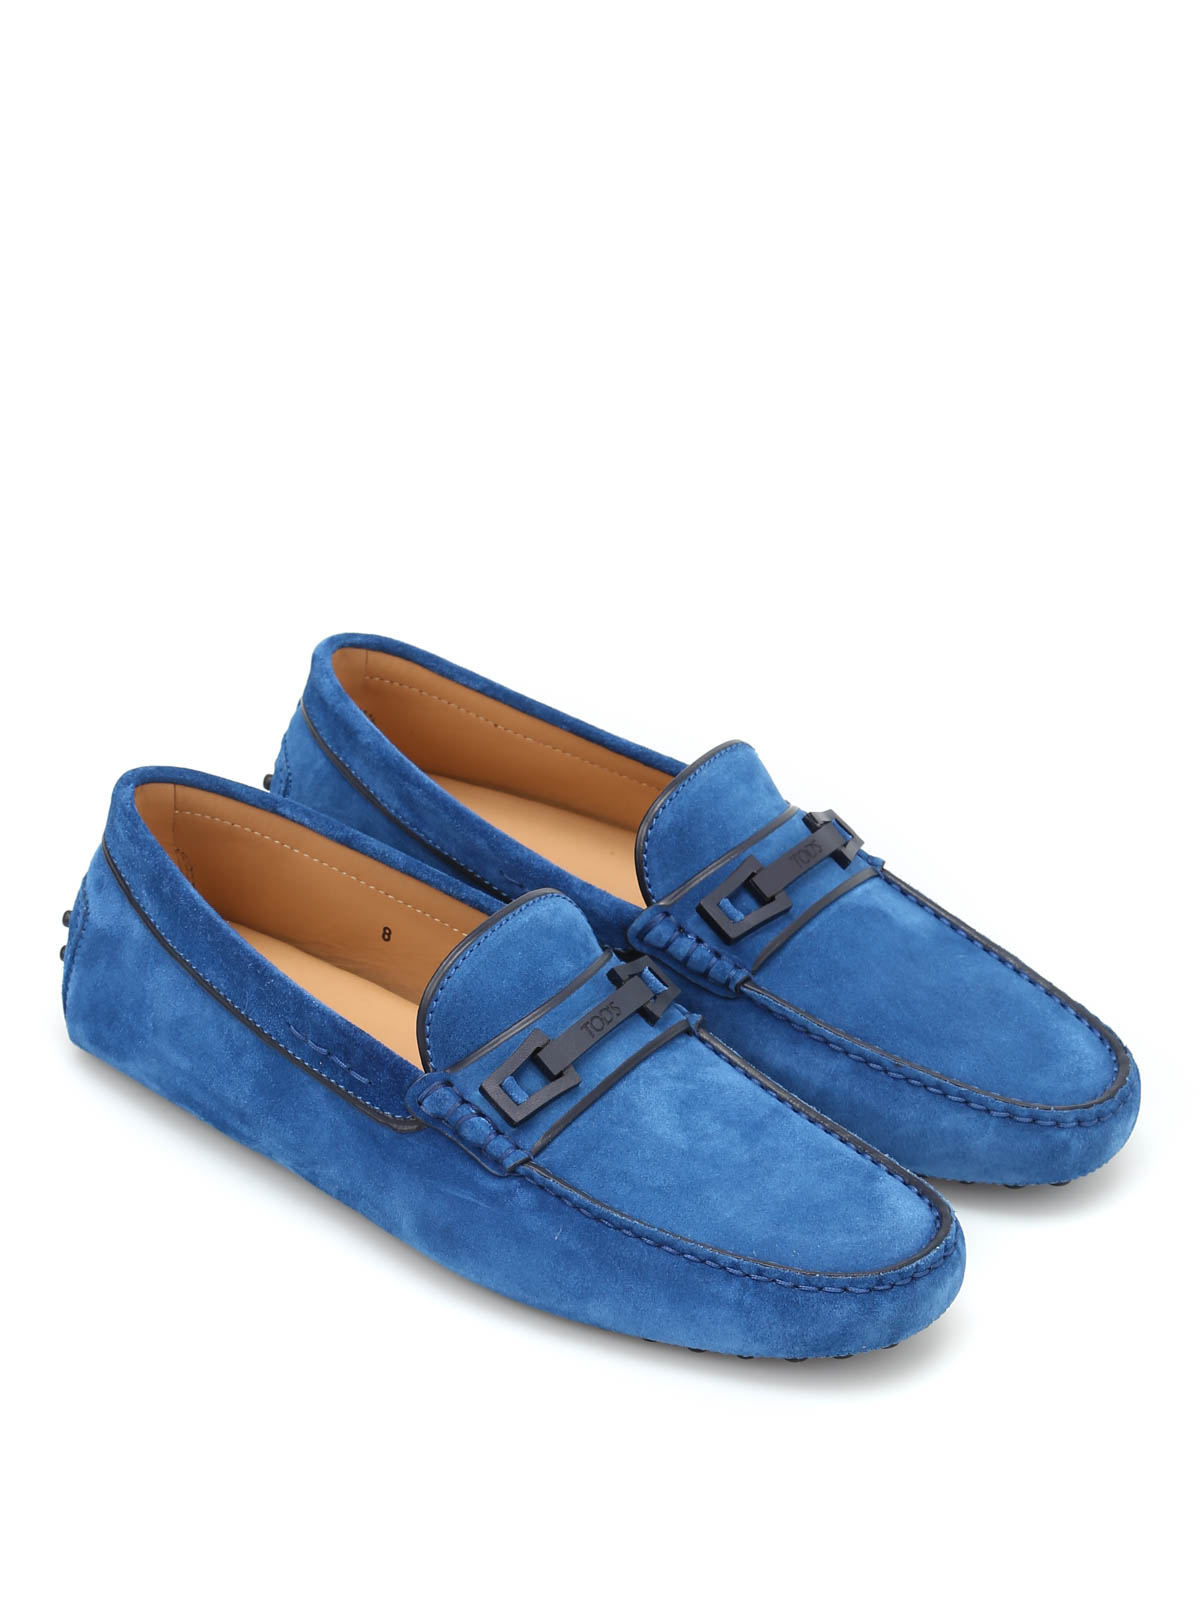 Macro Clamp Country suede loafers